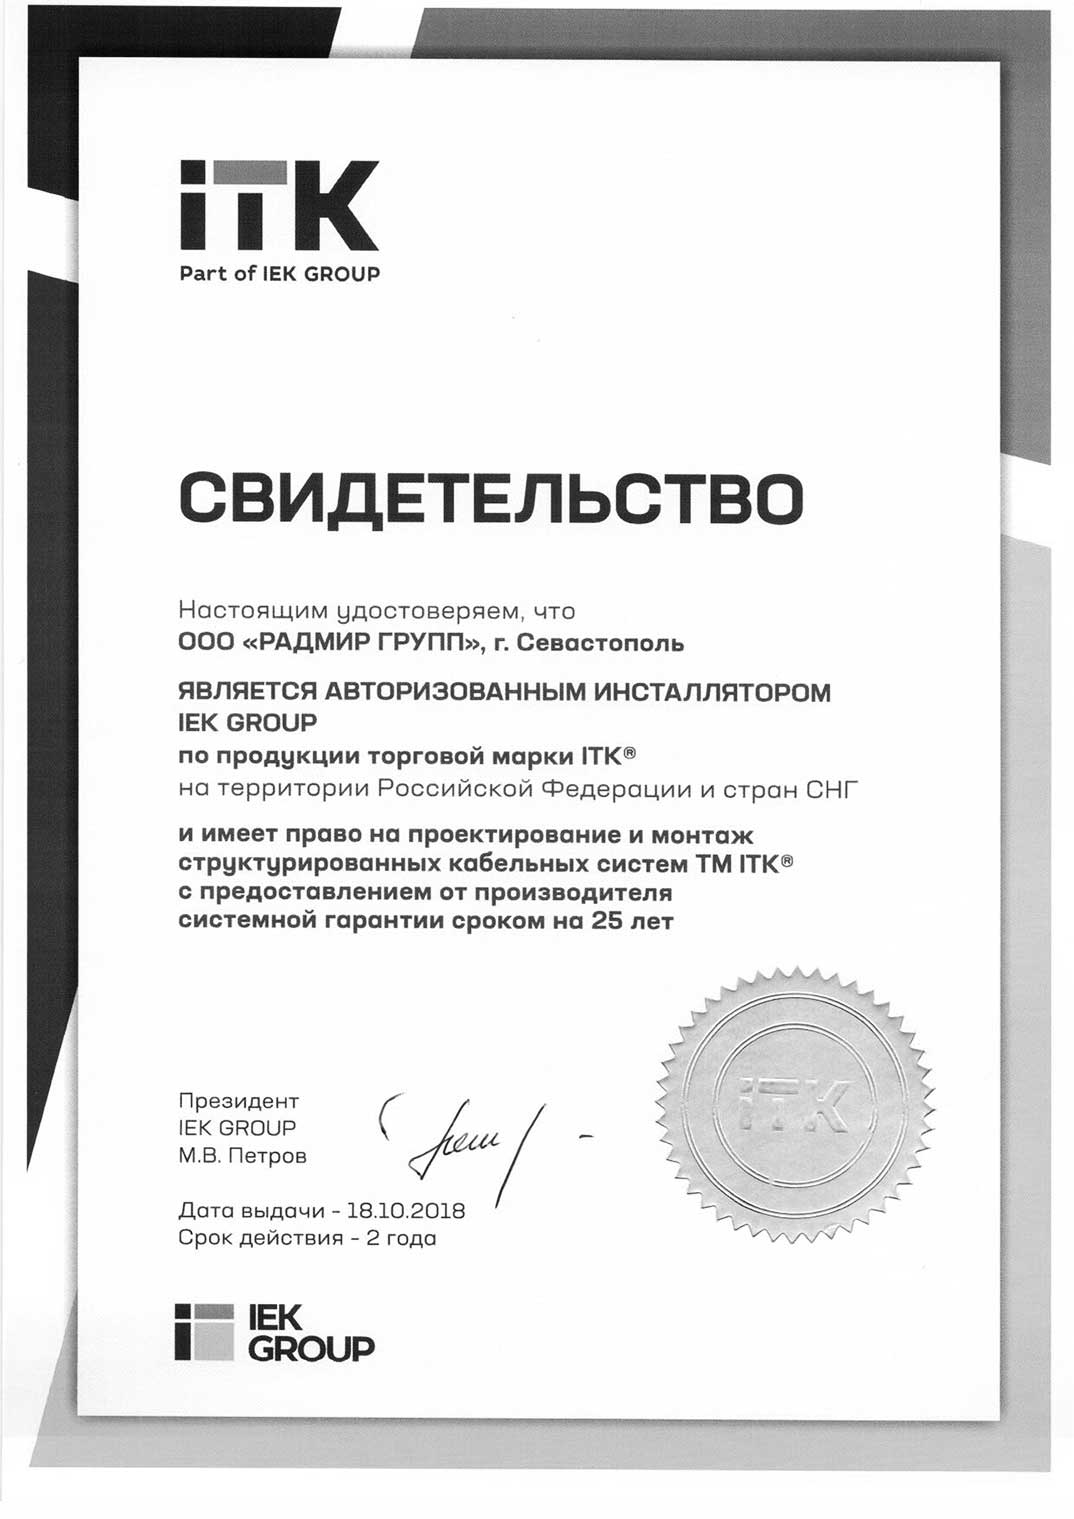 Свидетельство IEK GROUP